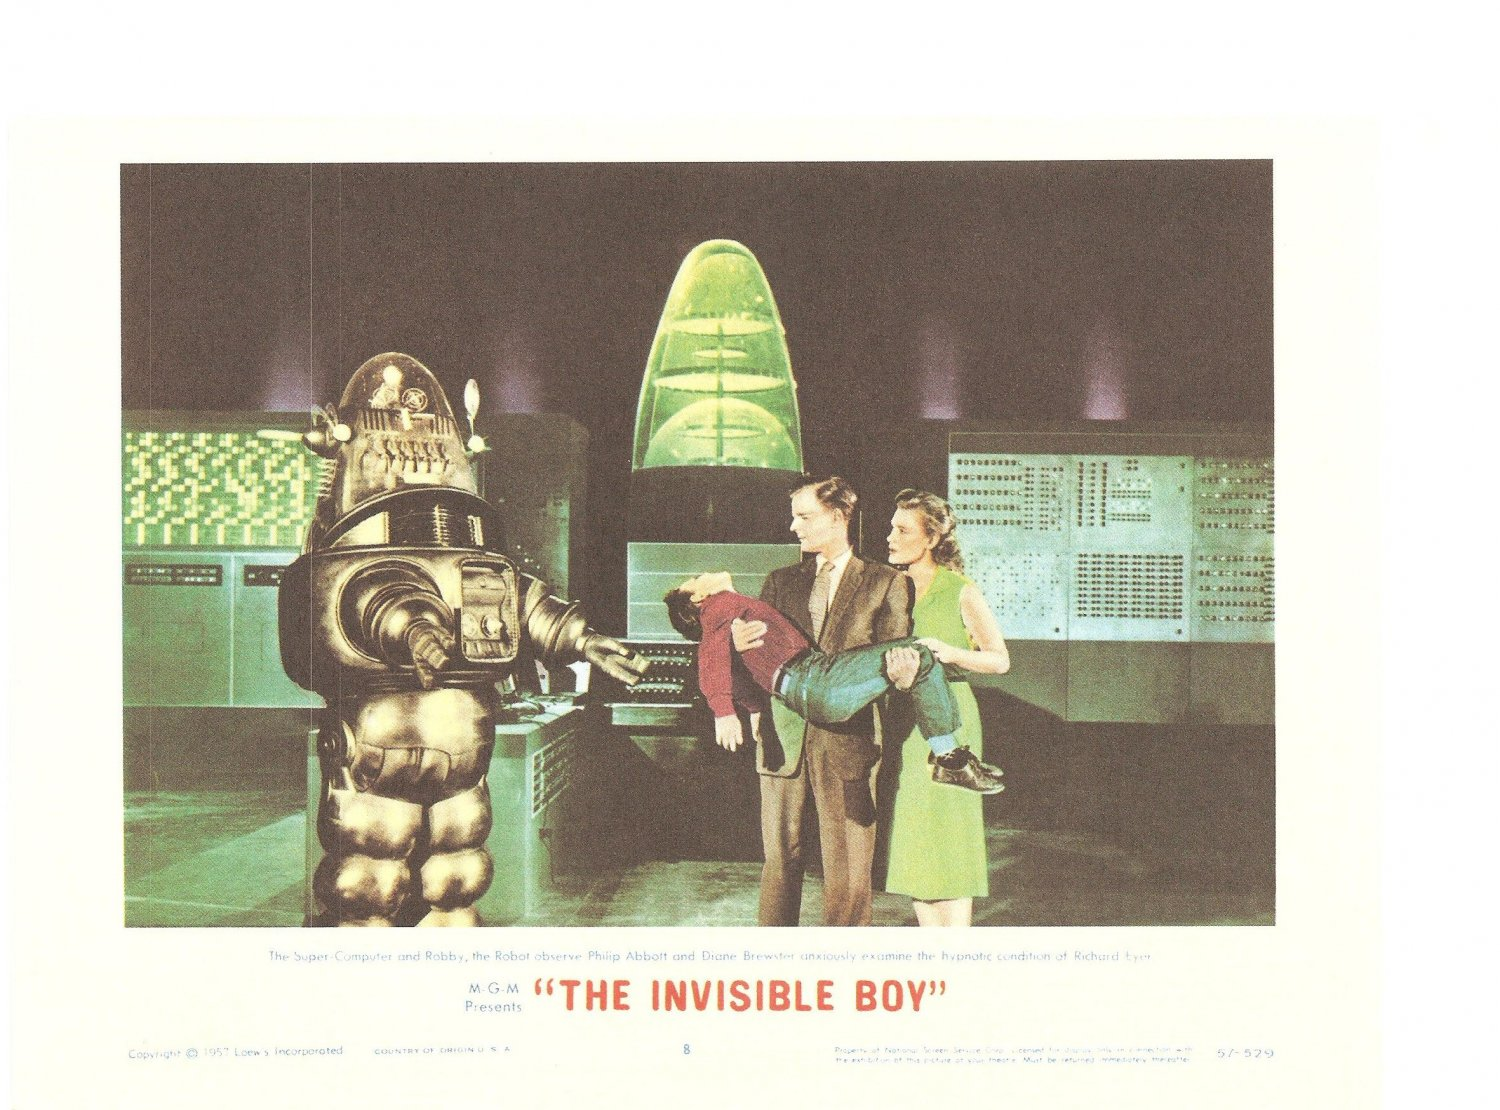 The Invisible Boy Forbidden Planet Lobby Card Repro 2006 Turner Entertainment 57 529 Promo